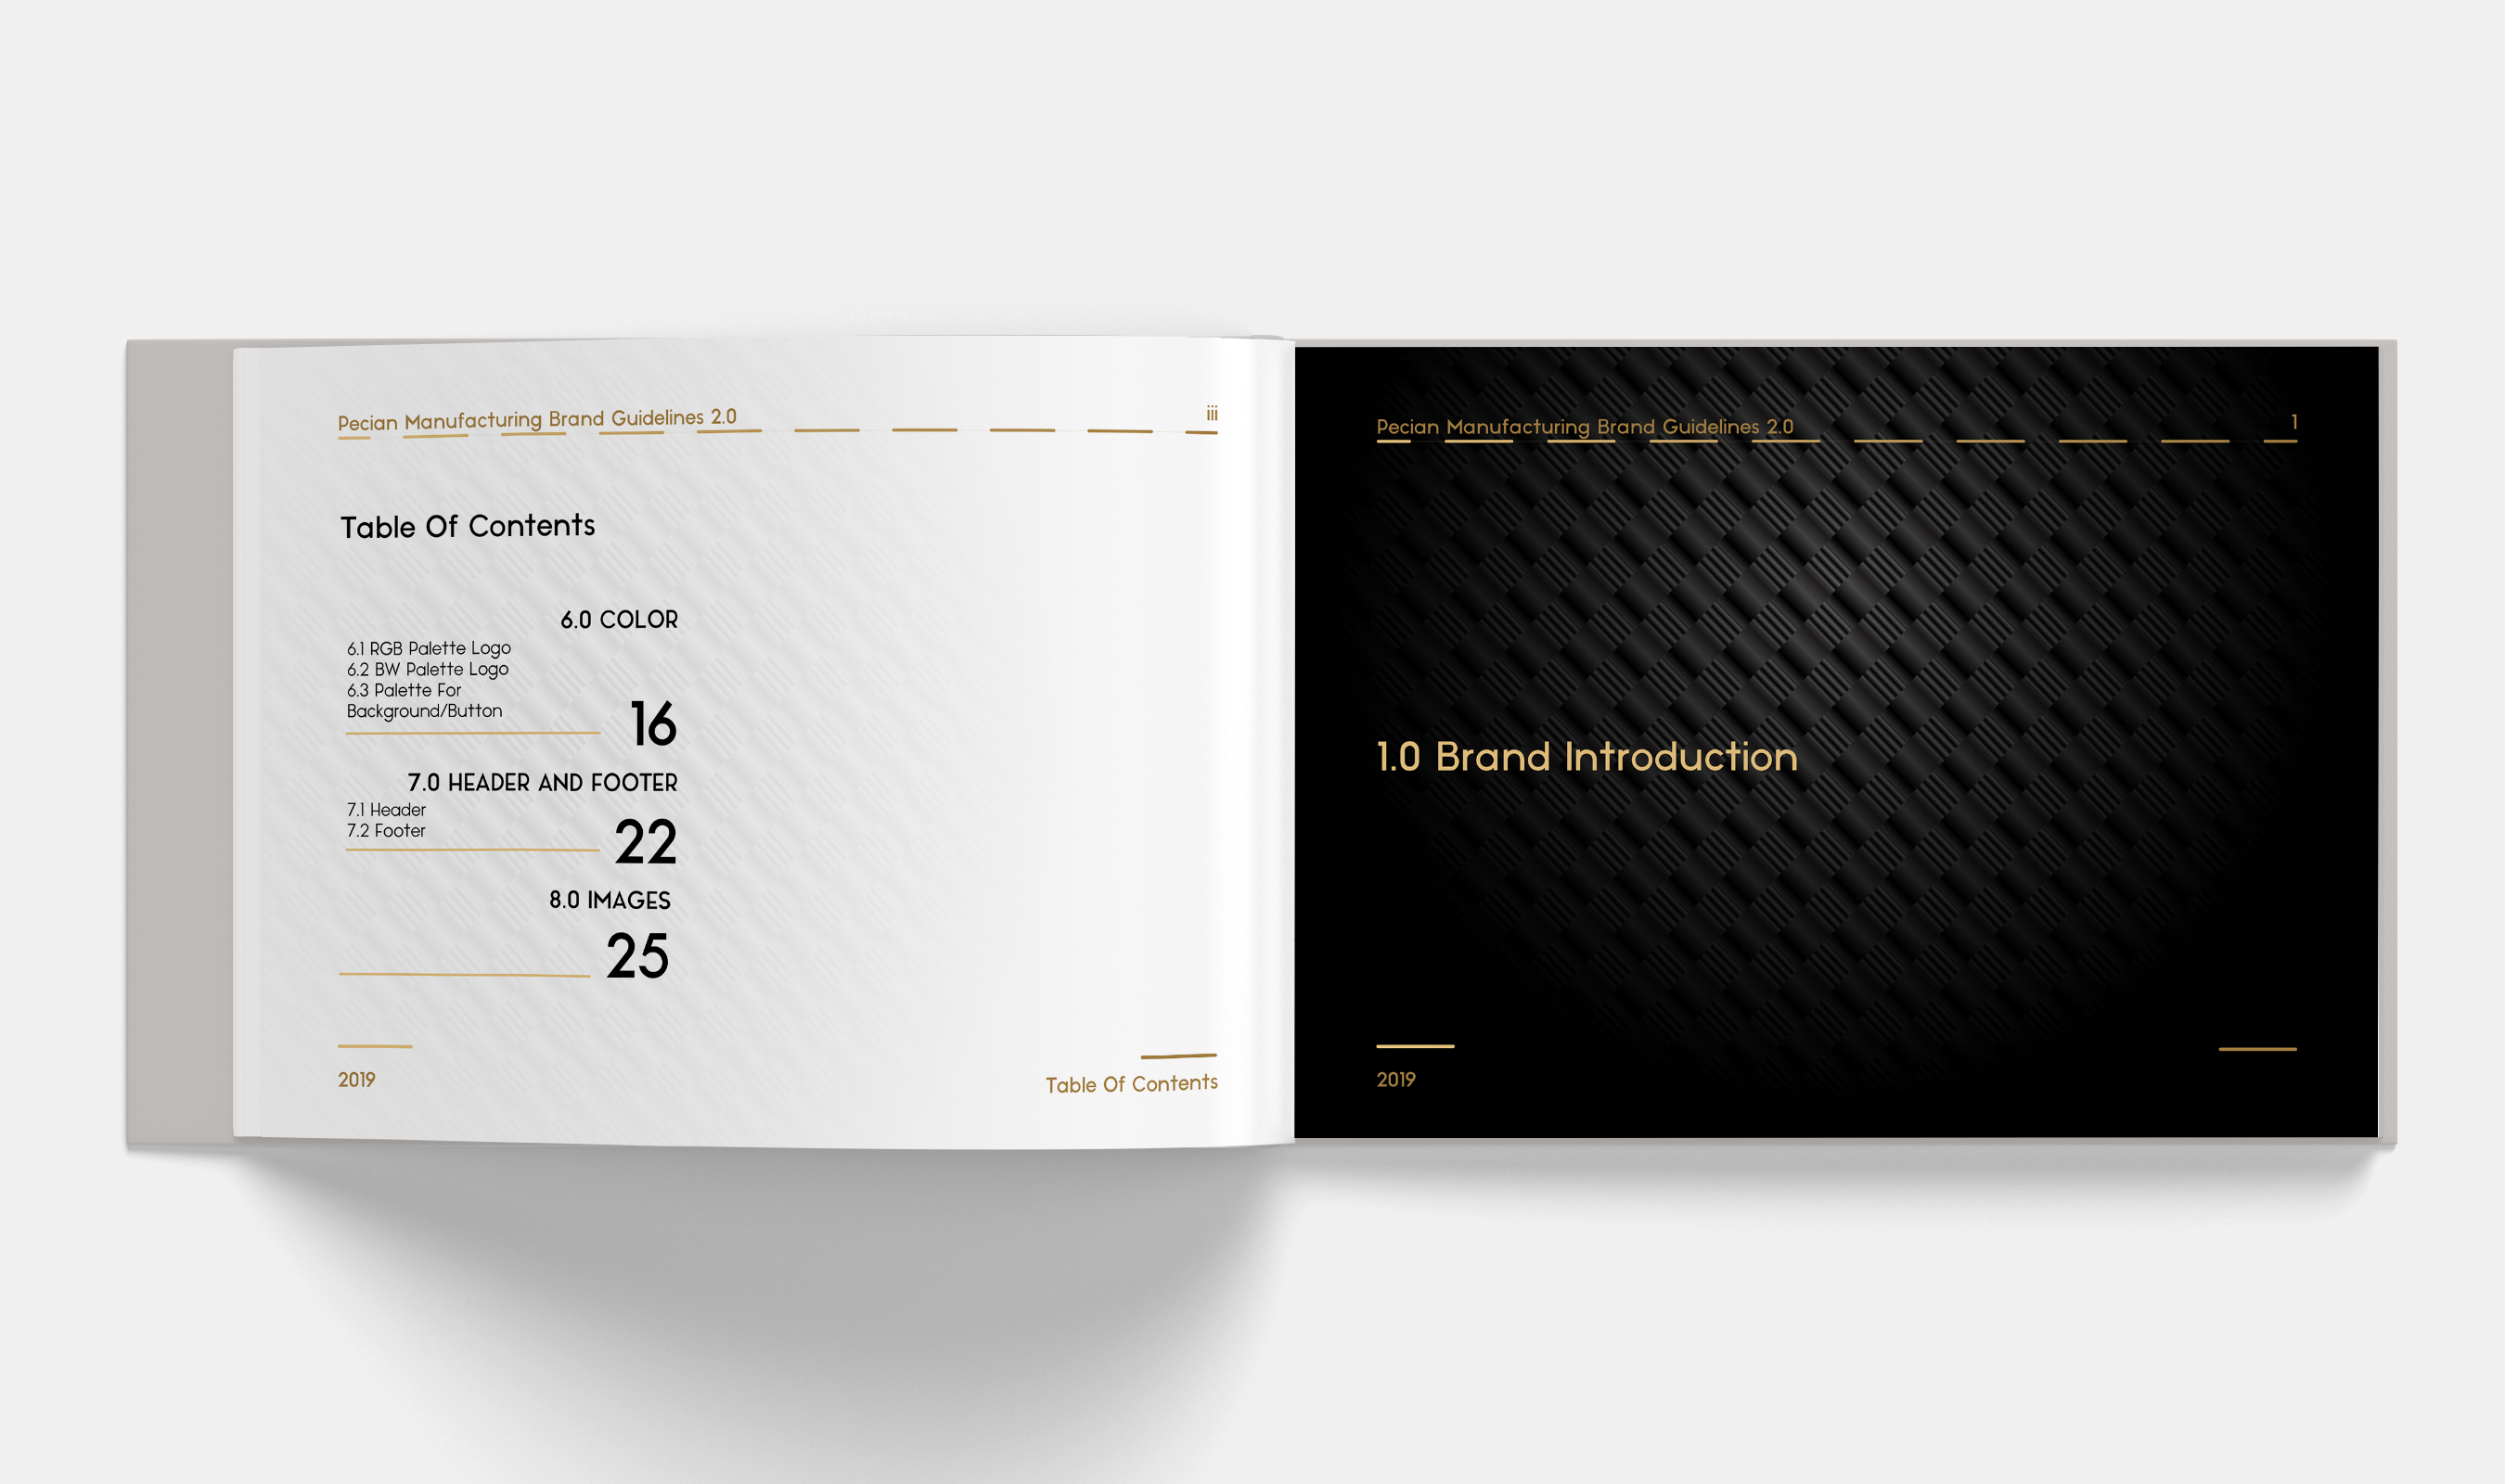 Brand Guidelines 2018 | Pecian Manufacturing